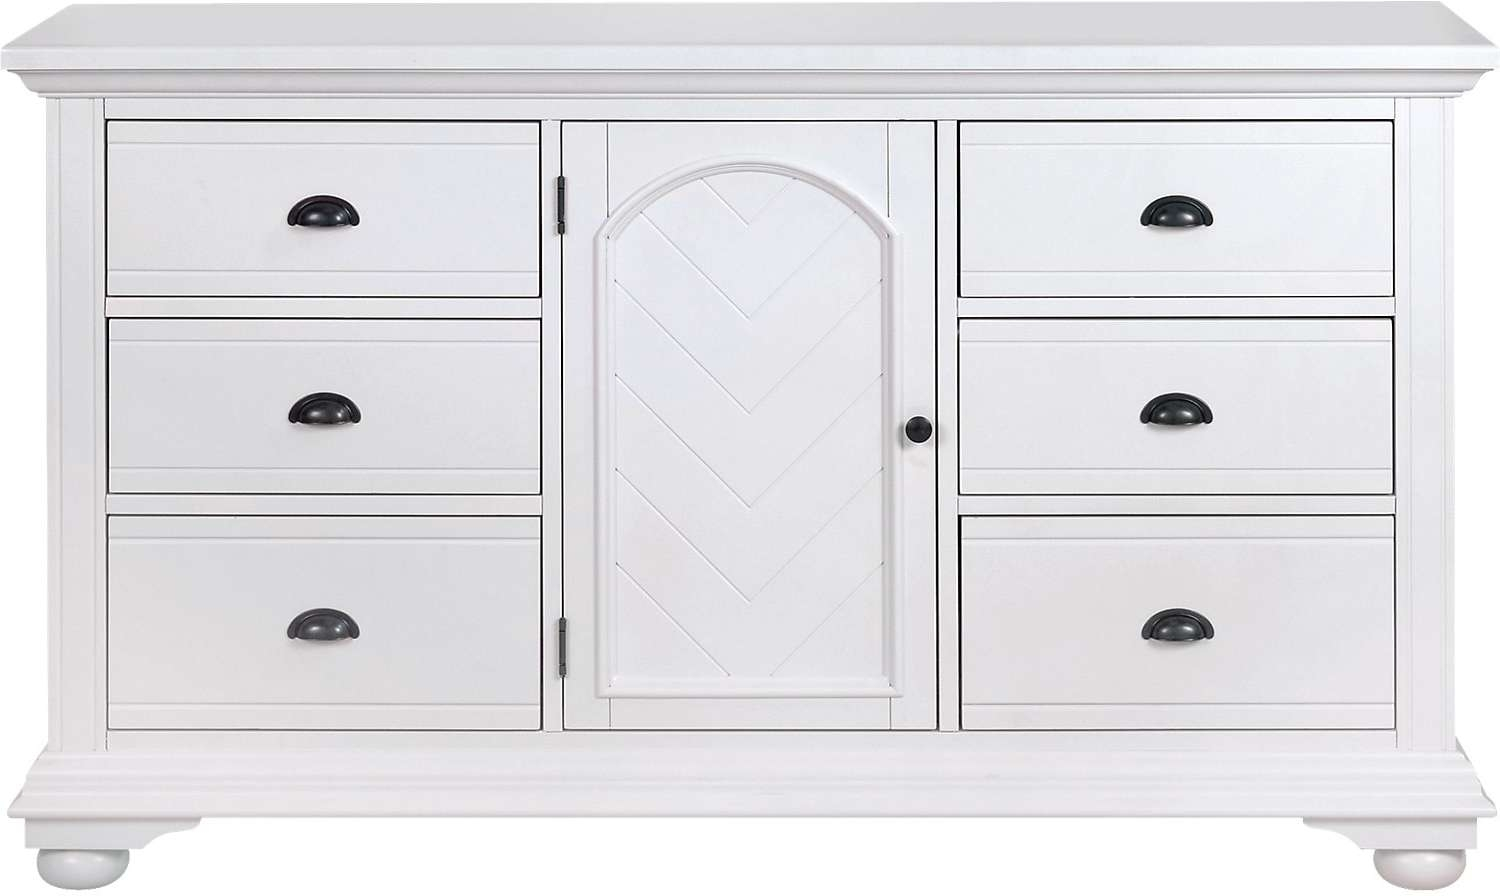 Off White Dresser Compact Buffets & Sideboards Dressers Chairs Pertaining To Off White Sideboards (View 7 of 20)